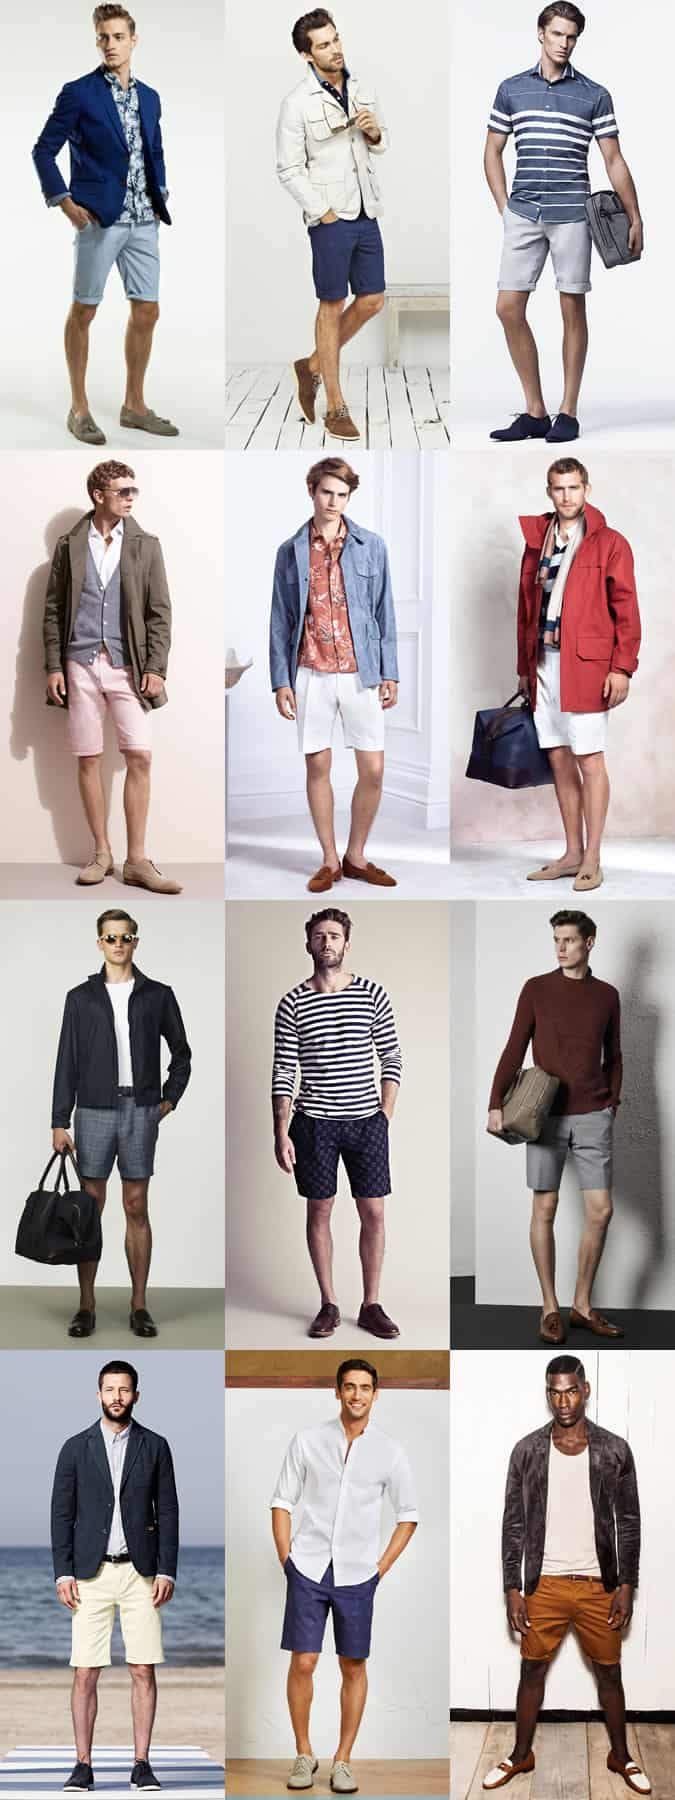 Men's Shoes with Shorts Outfit Inspiration Lookbook